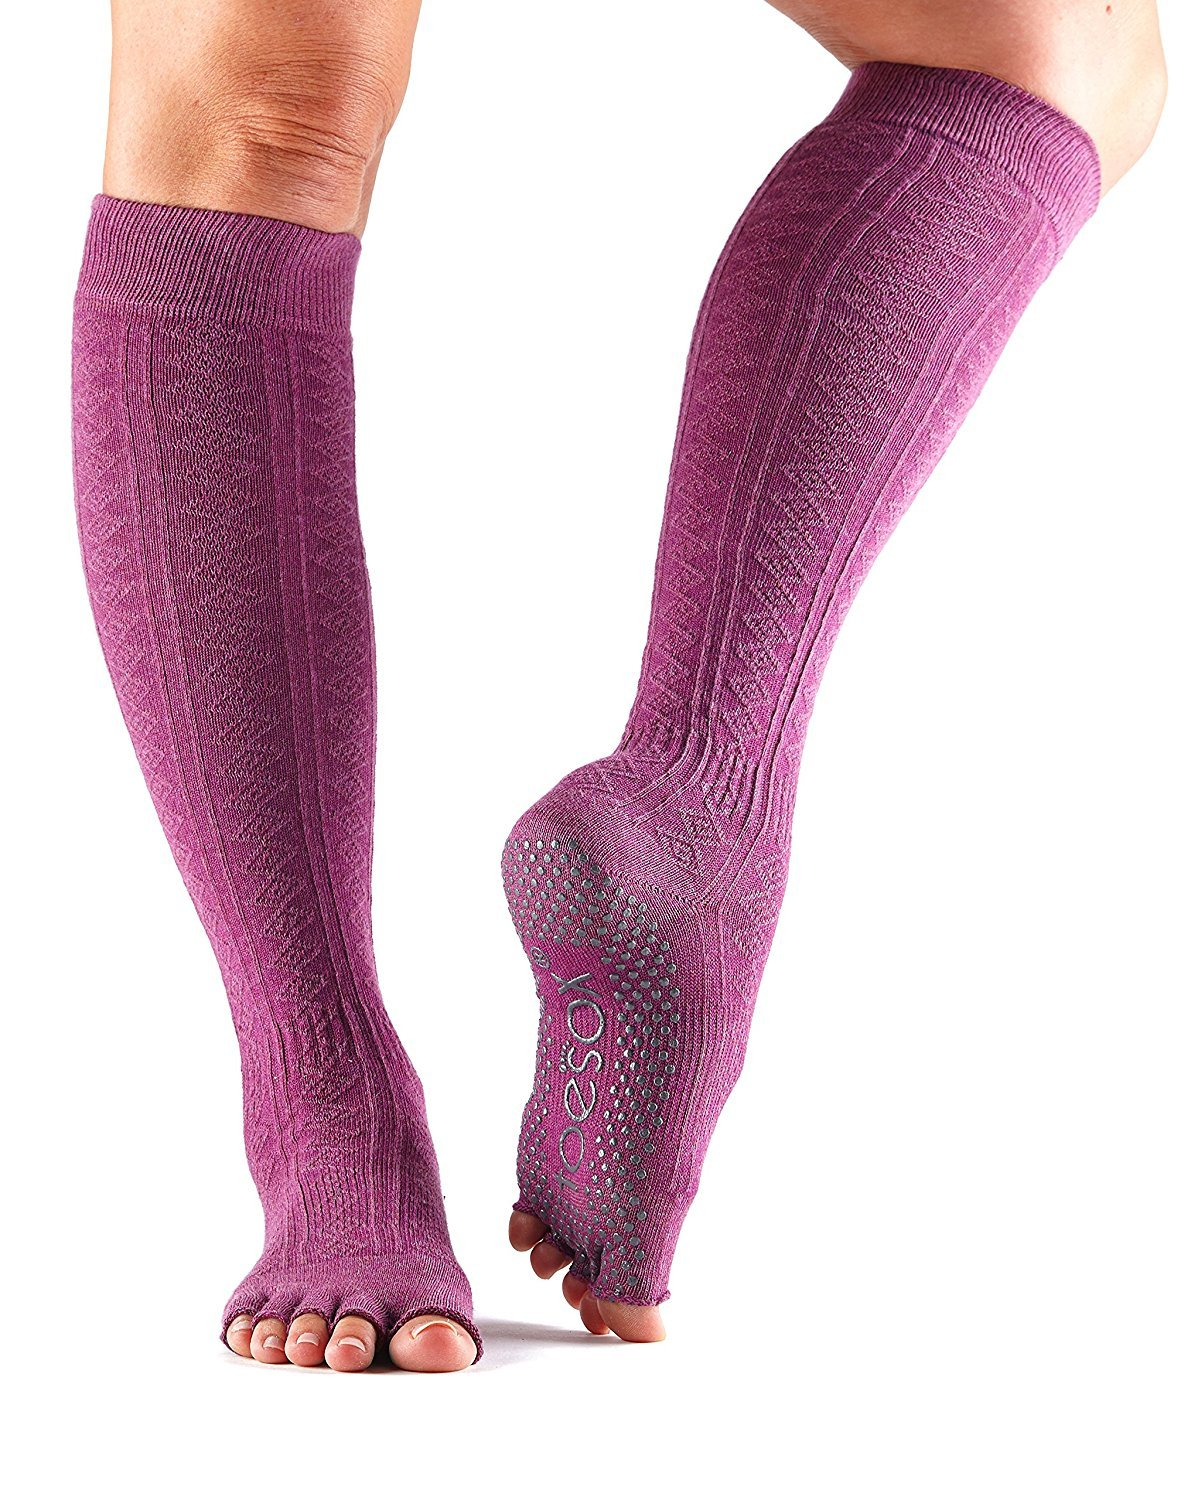 ToeSox Grip Pilates Barre Socks - Non Slip Scrunch Half Toe for Yoga & Ballet